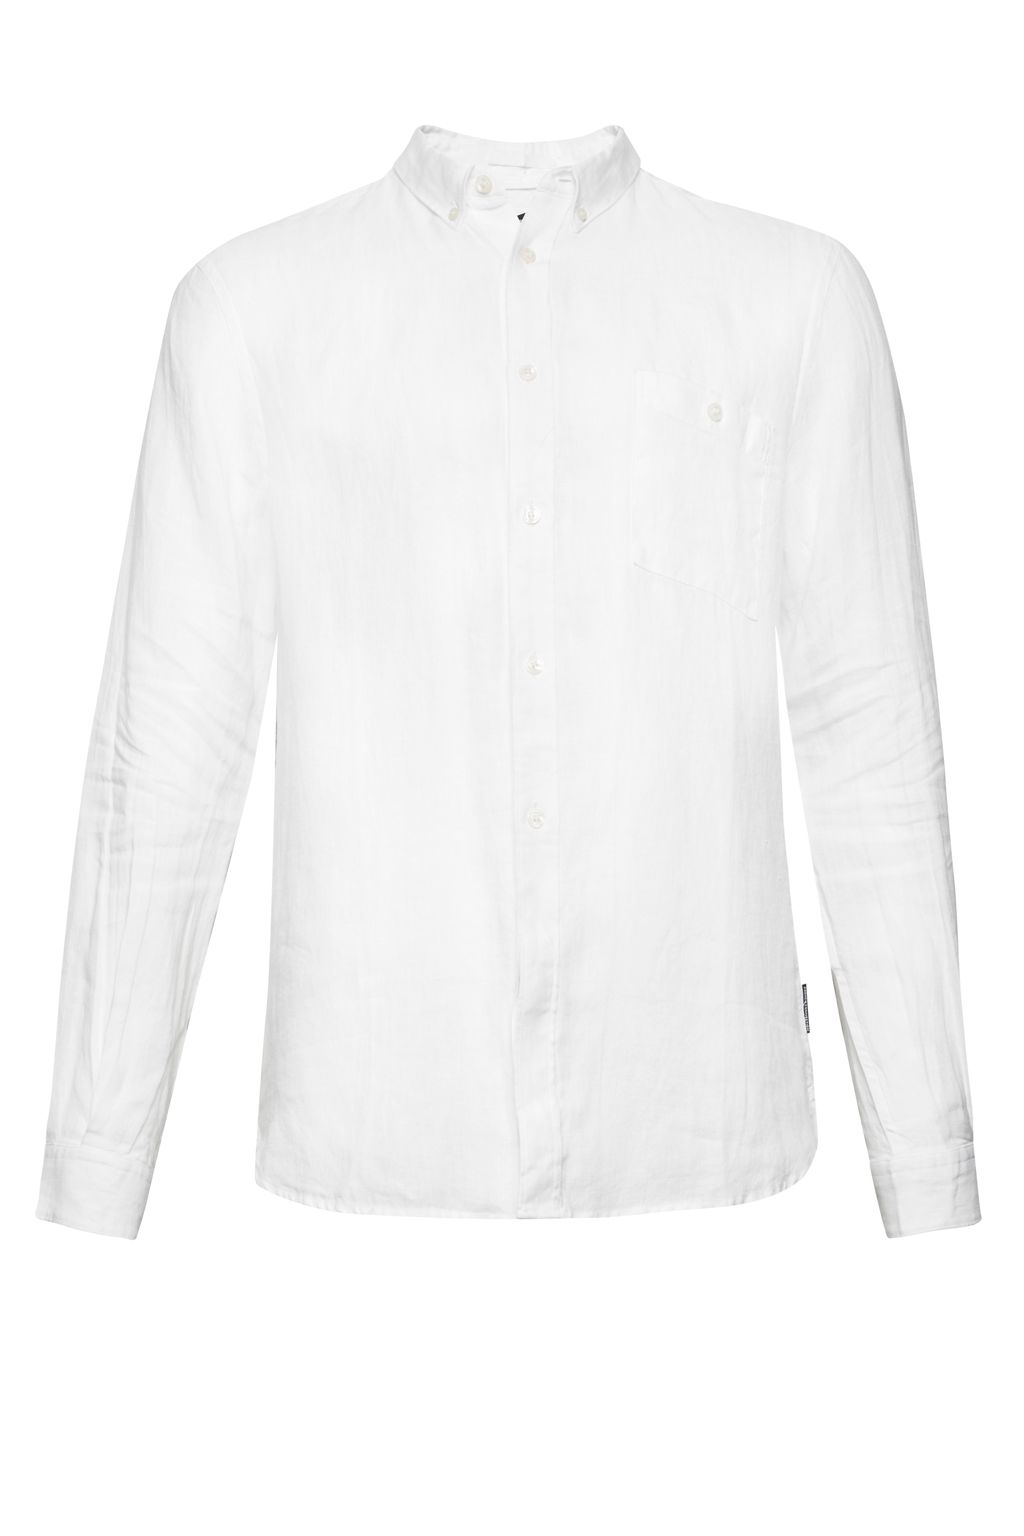 Mens French Connection Summer Linen Shirt White